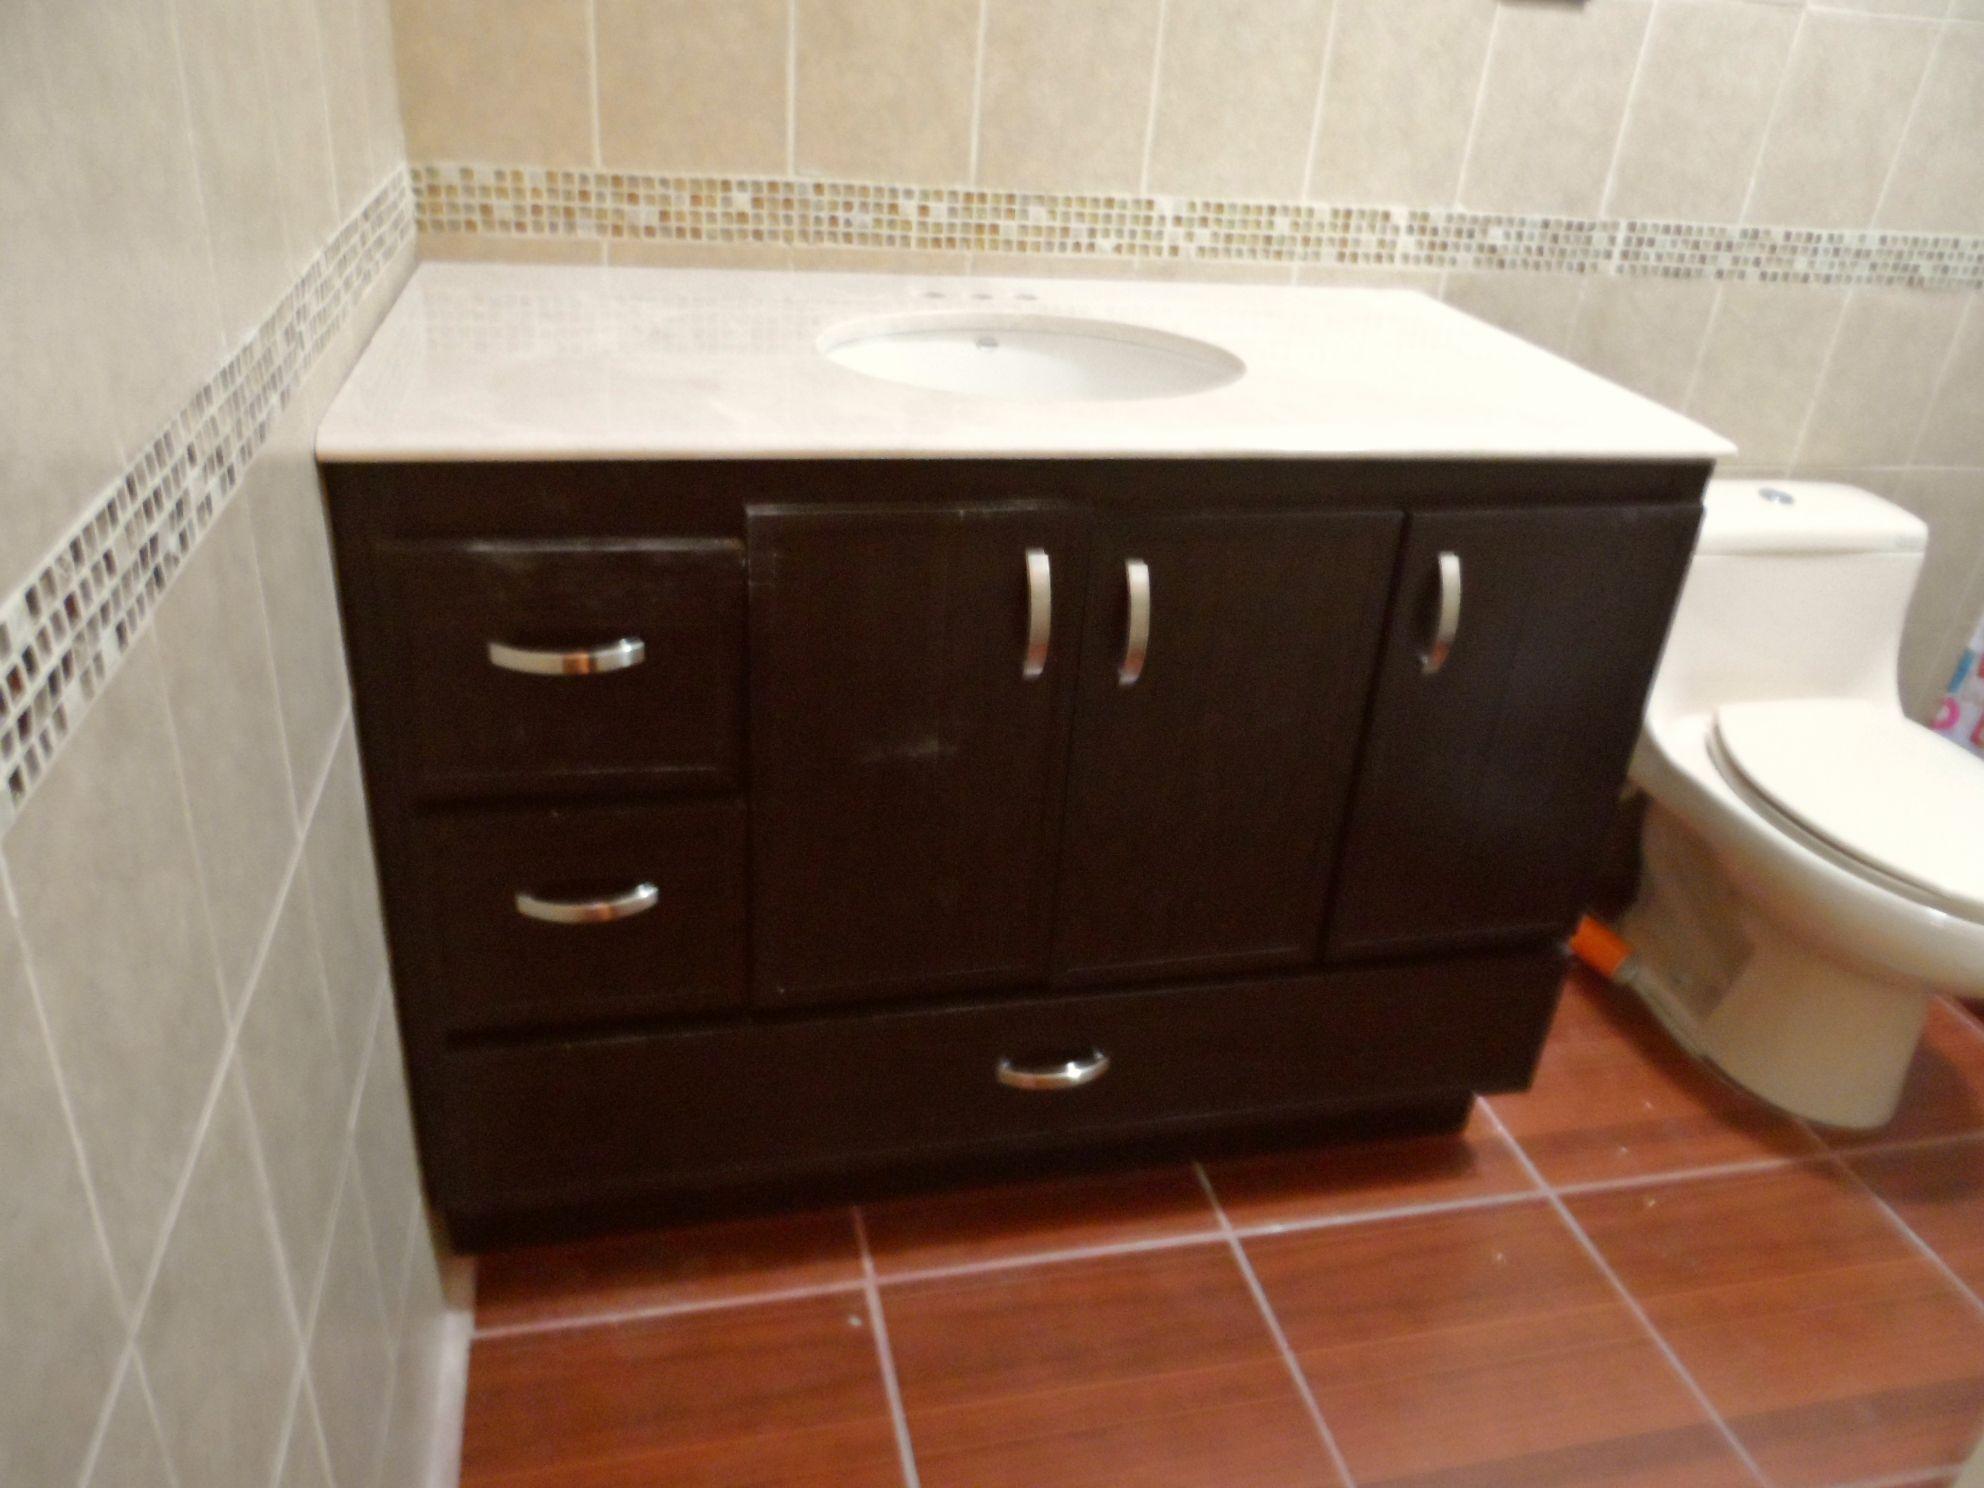 3 Door Plastic Bathroom Cabinetplastic bathroom cabinets